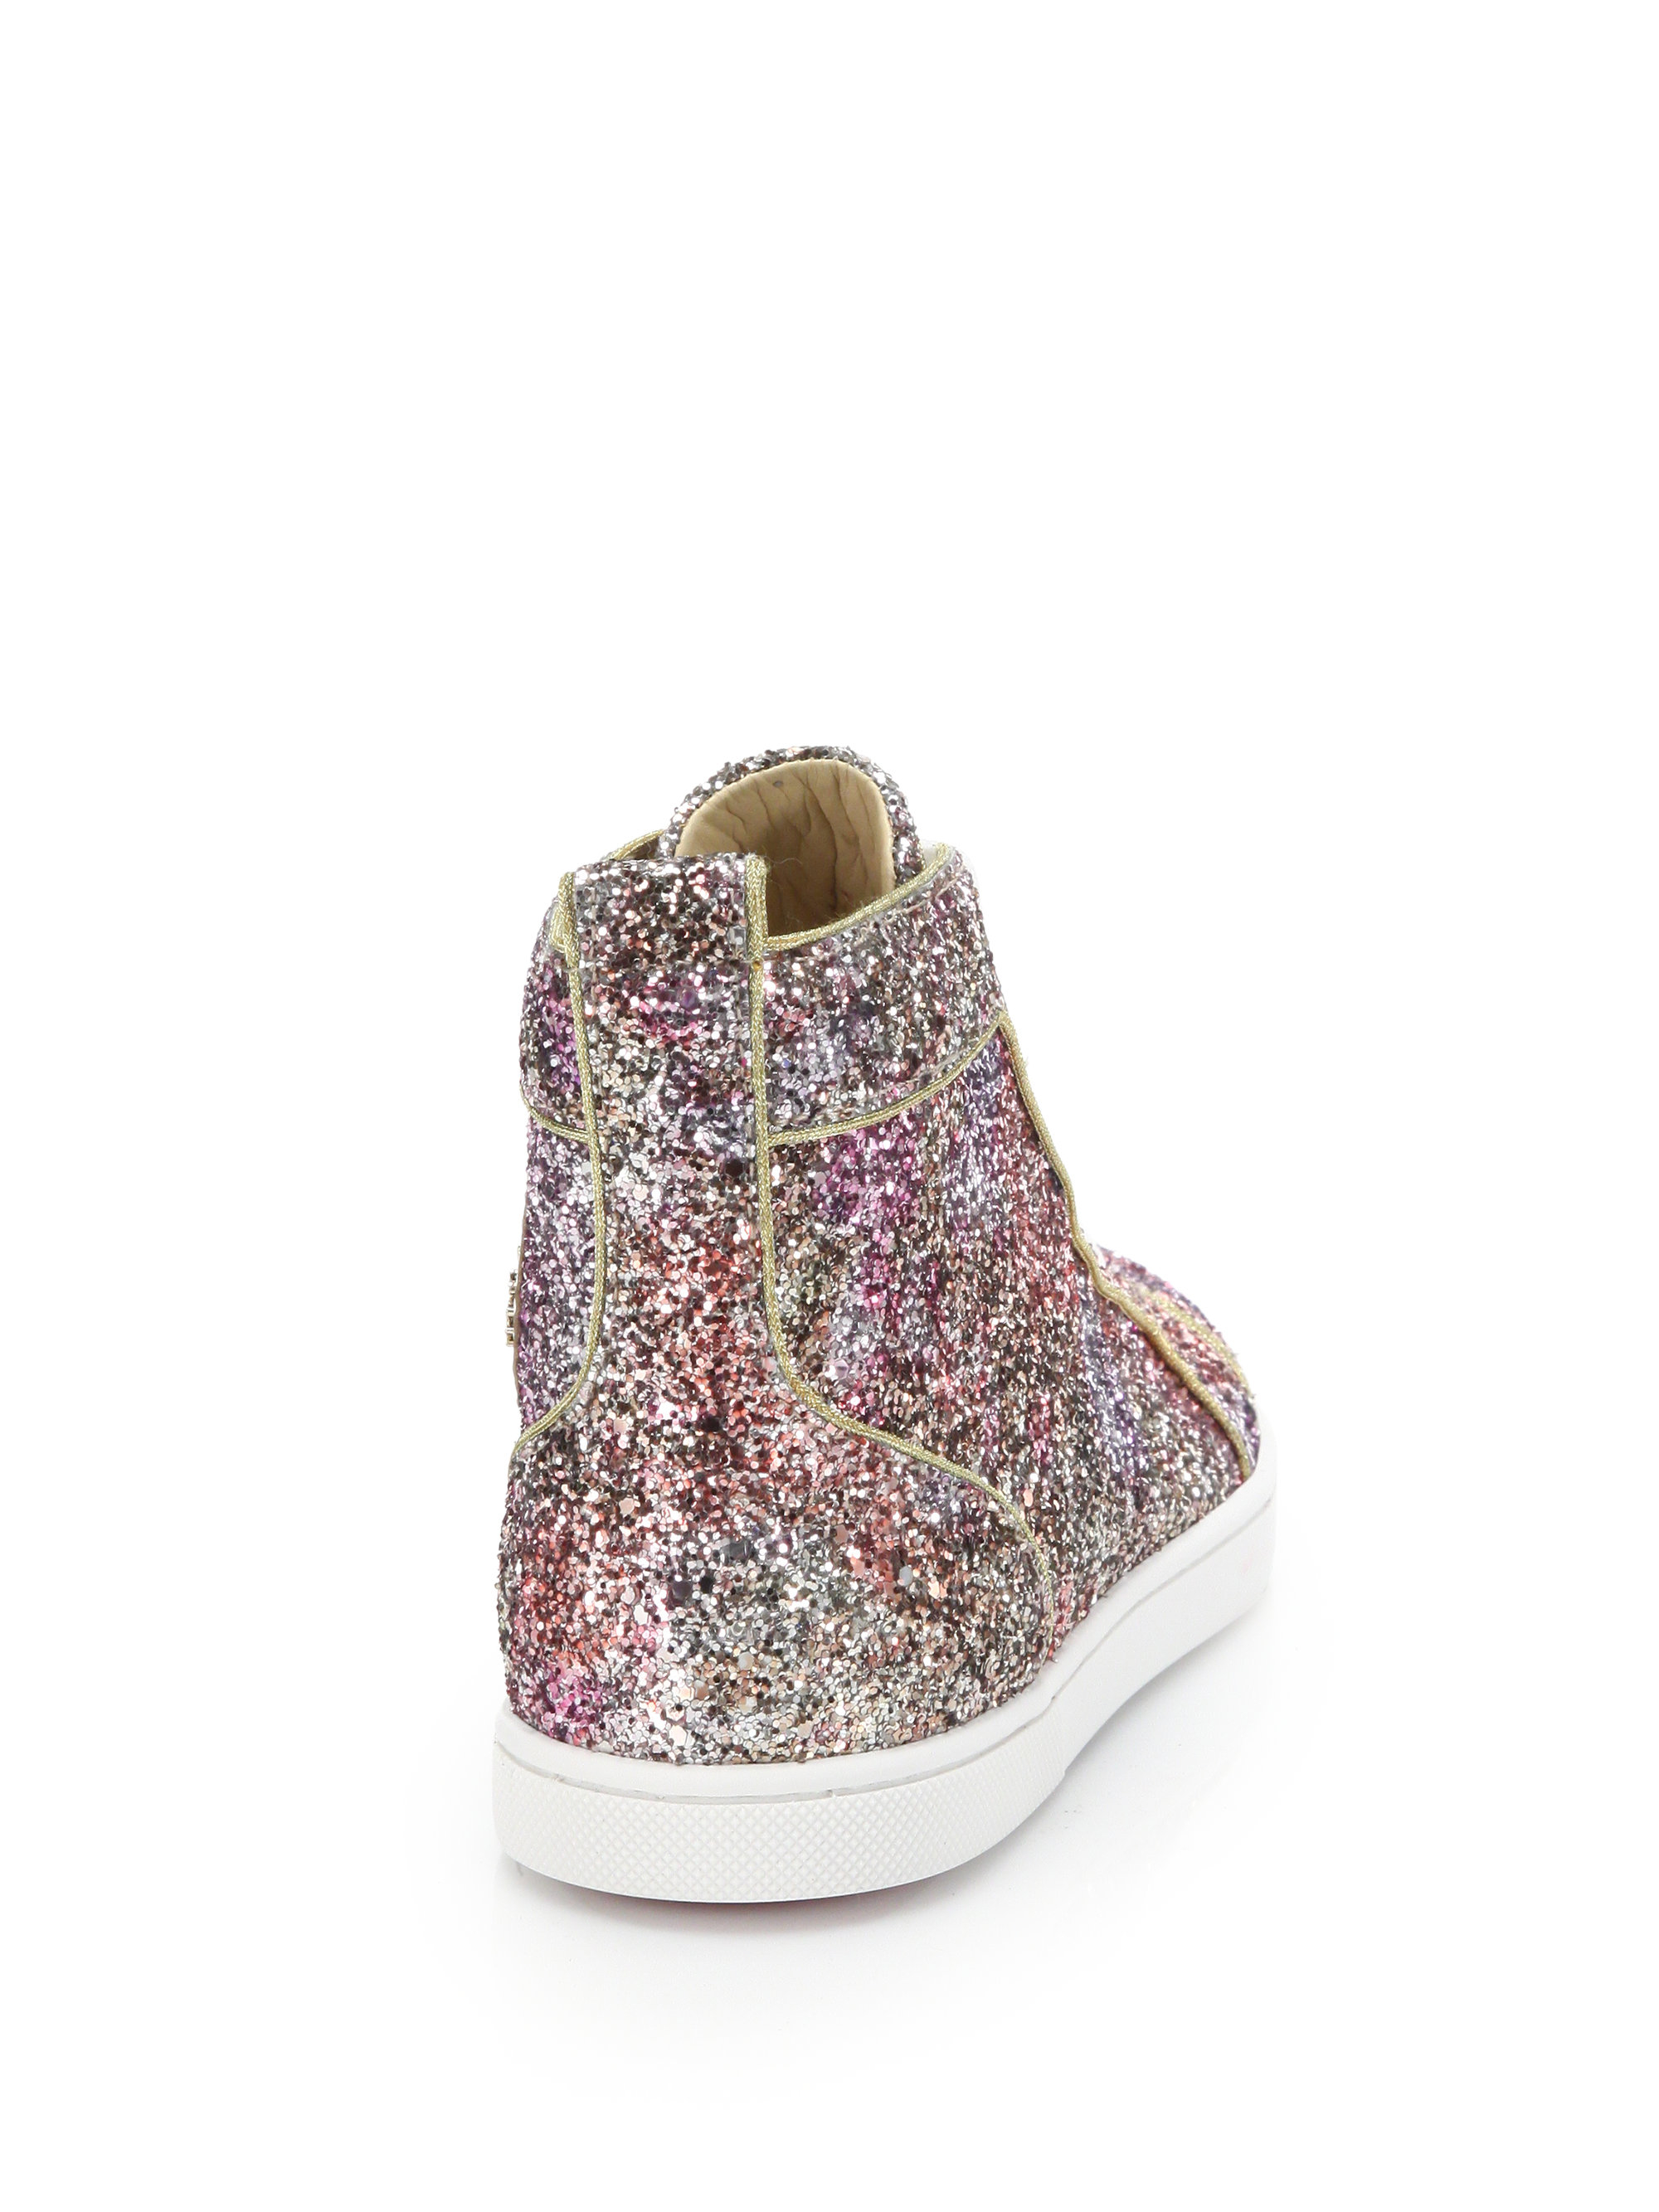 1caaab6ab6c ... new arrivals lyst christian louboutin bip bip glitter high top sneakers  in pink 460d7 f22a8